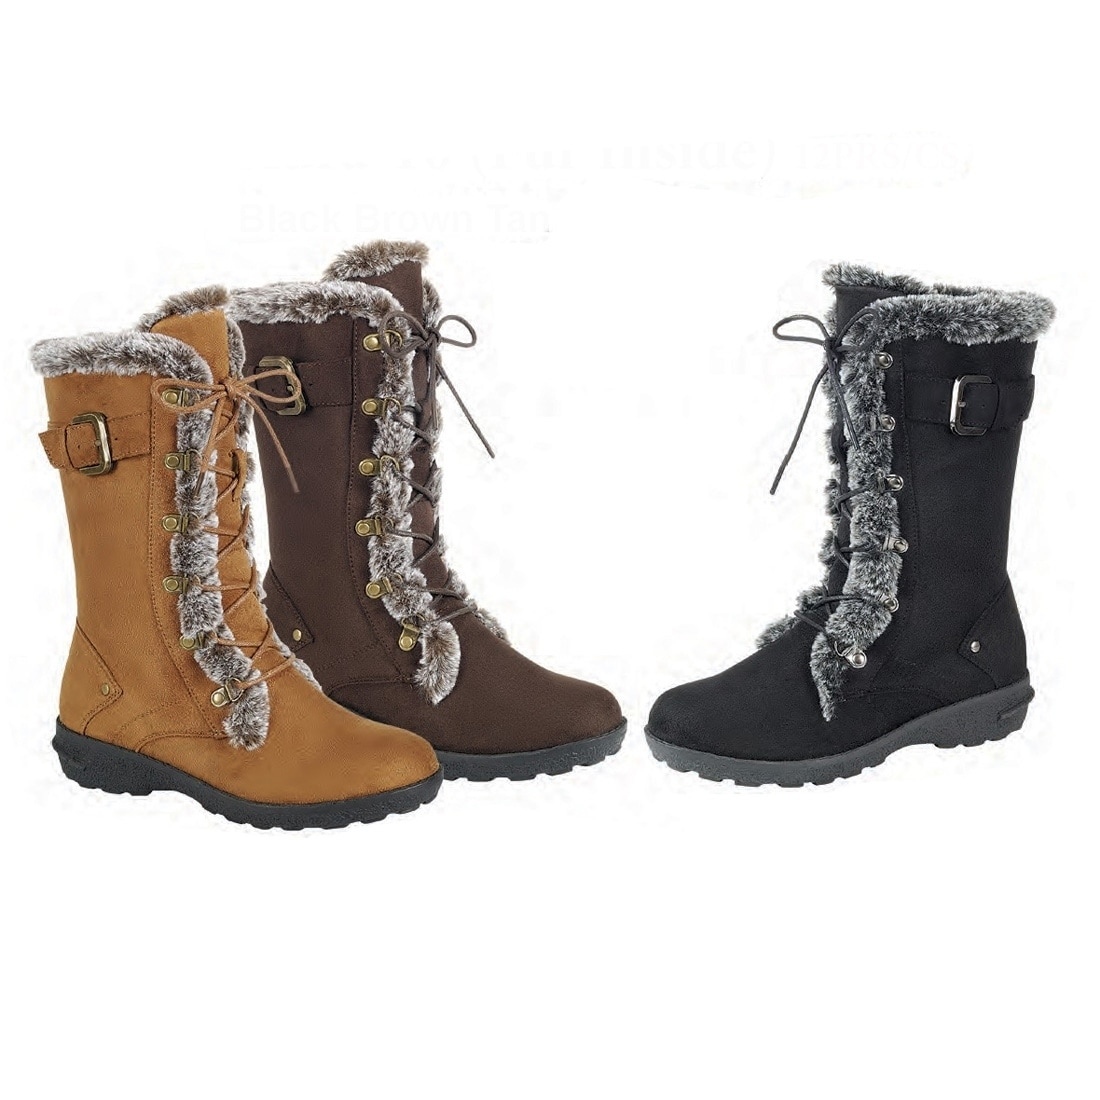 6dce5fdac Shop Forever Women's Lace Up Side Zipper Buckle Mid Calf Winter Snow Boots  - Free Shipping On Orders Over $45 - Overstock - 19422090